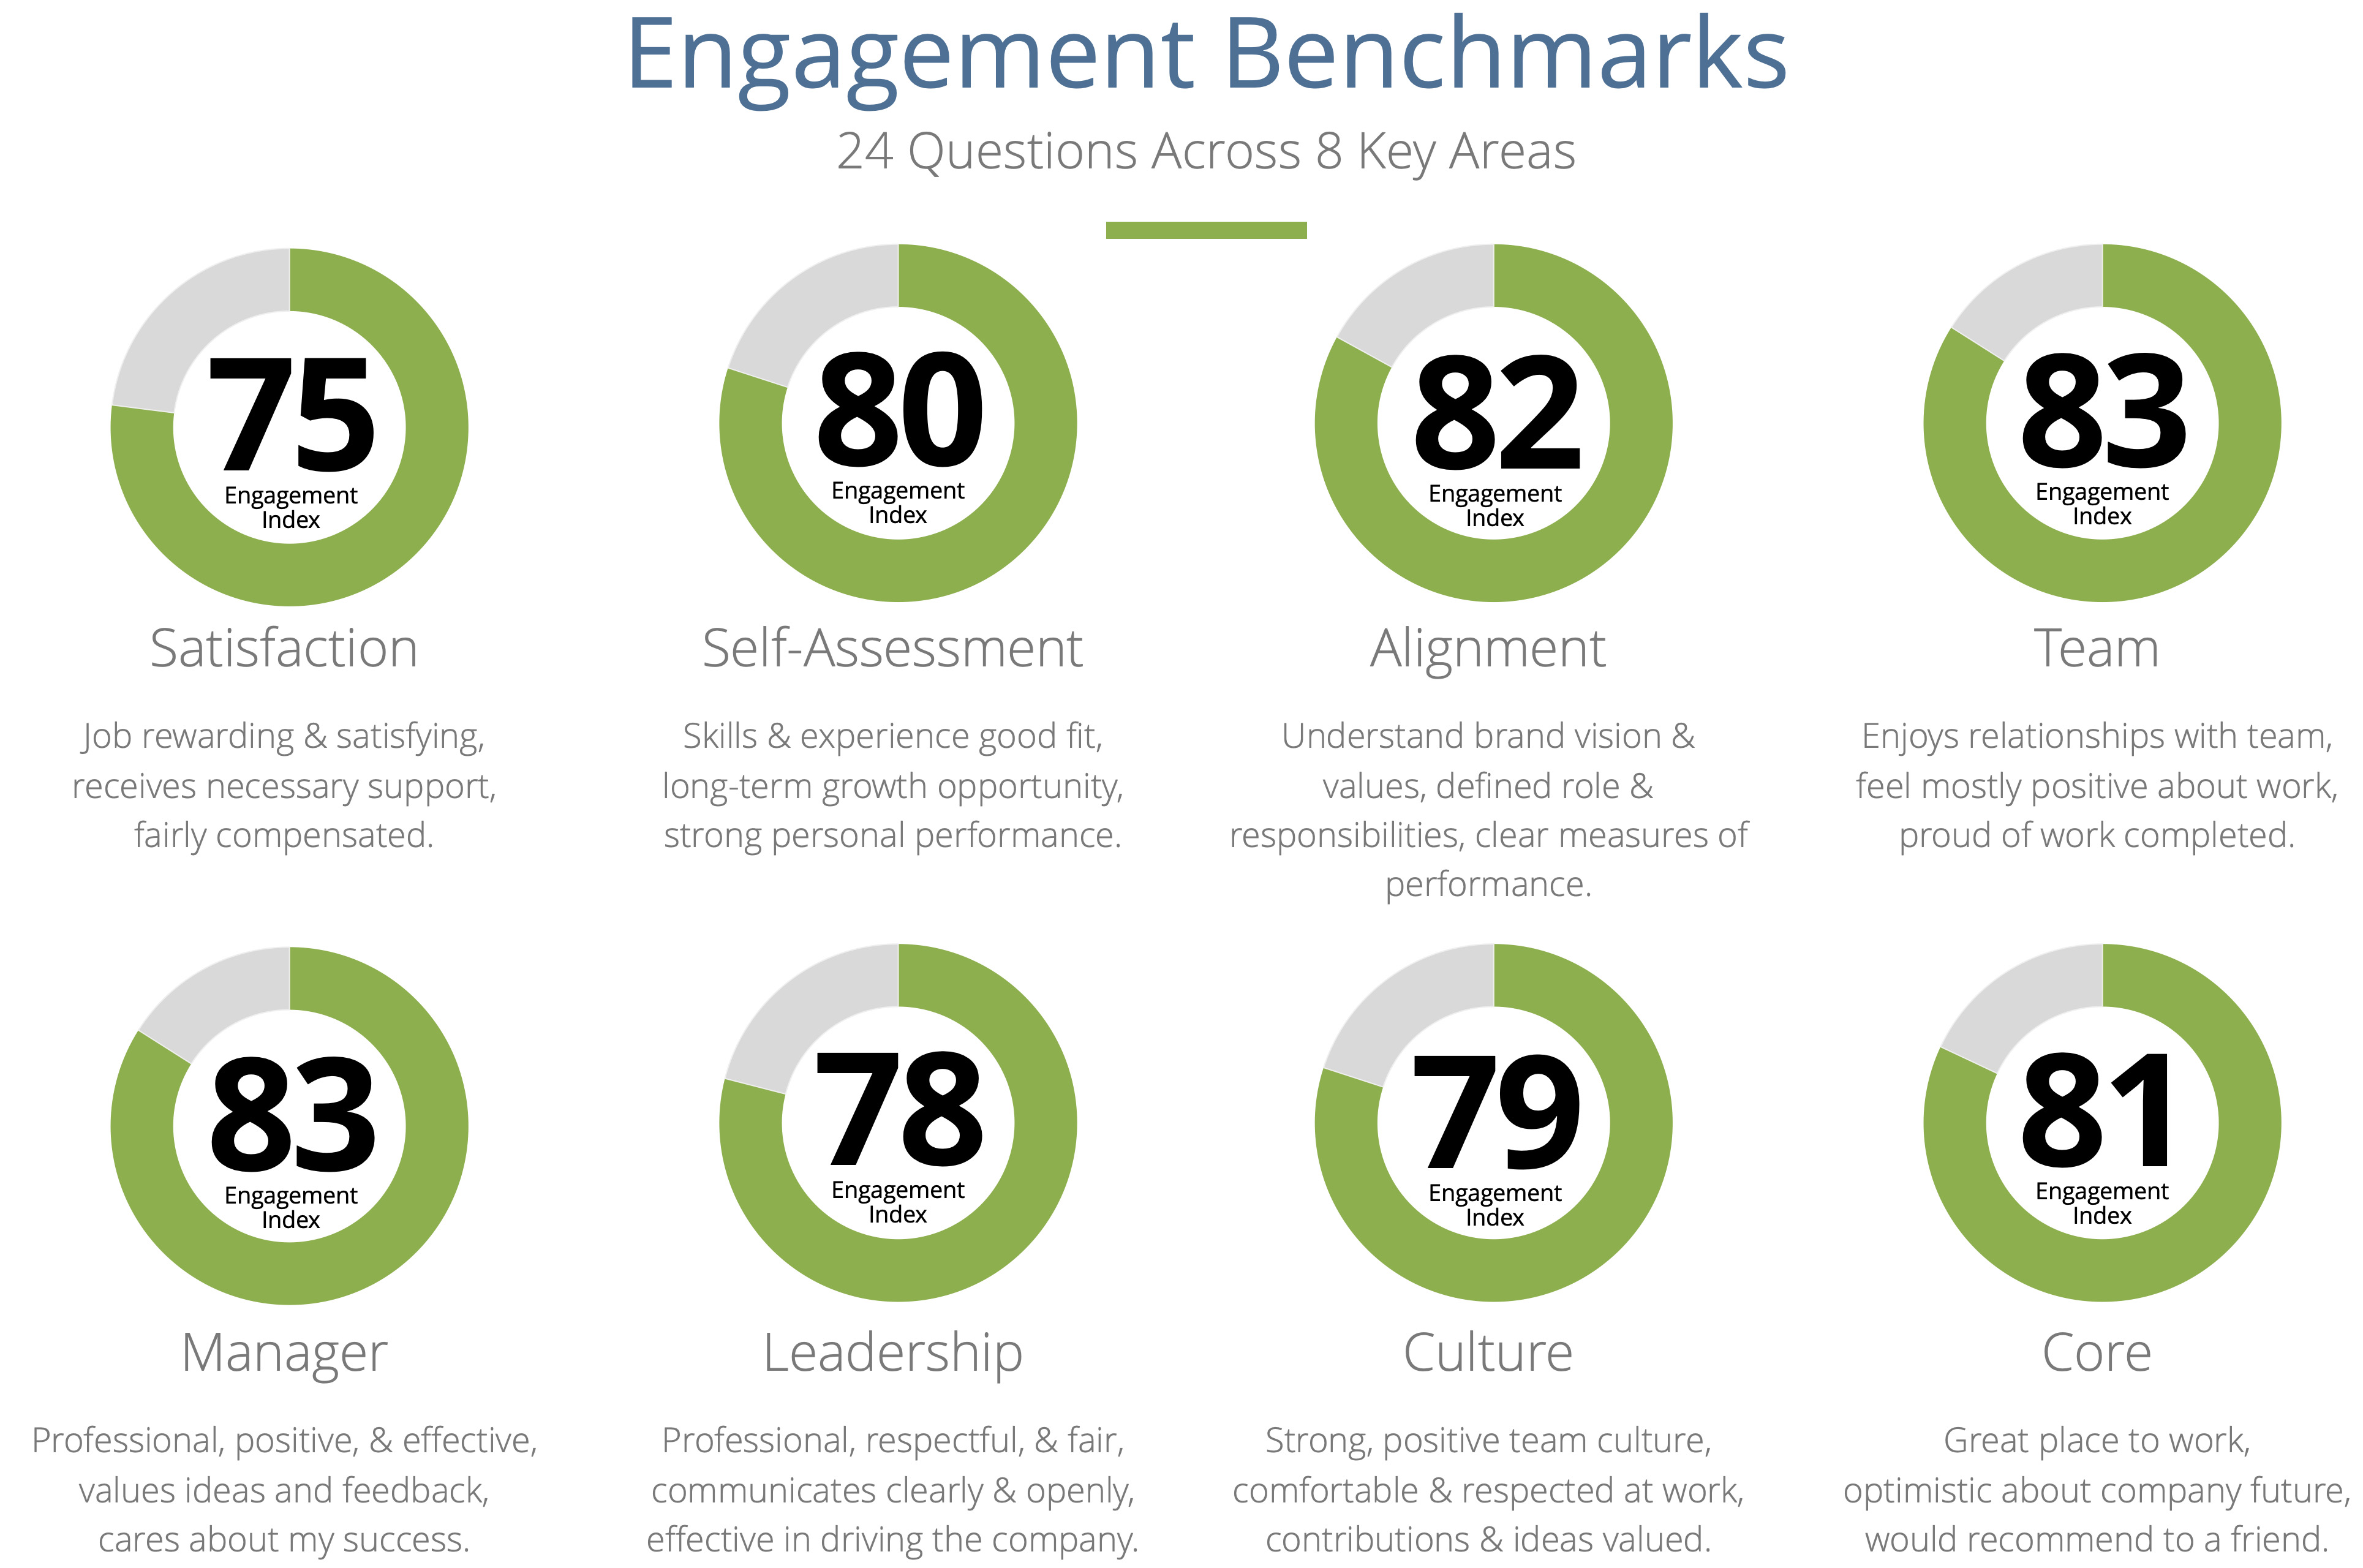 Employee Engagement Benchmarks